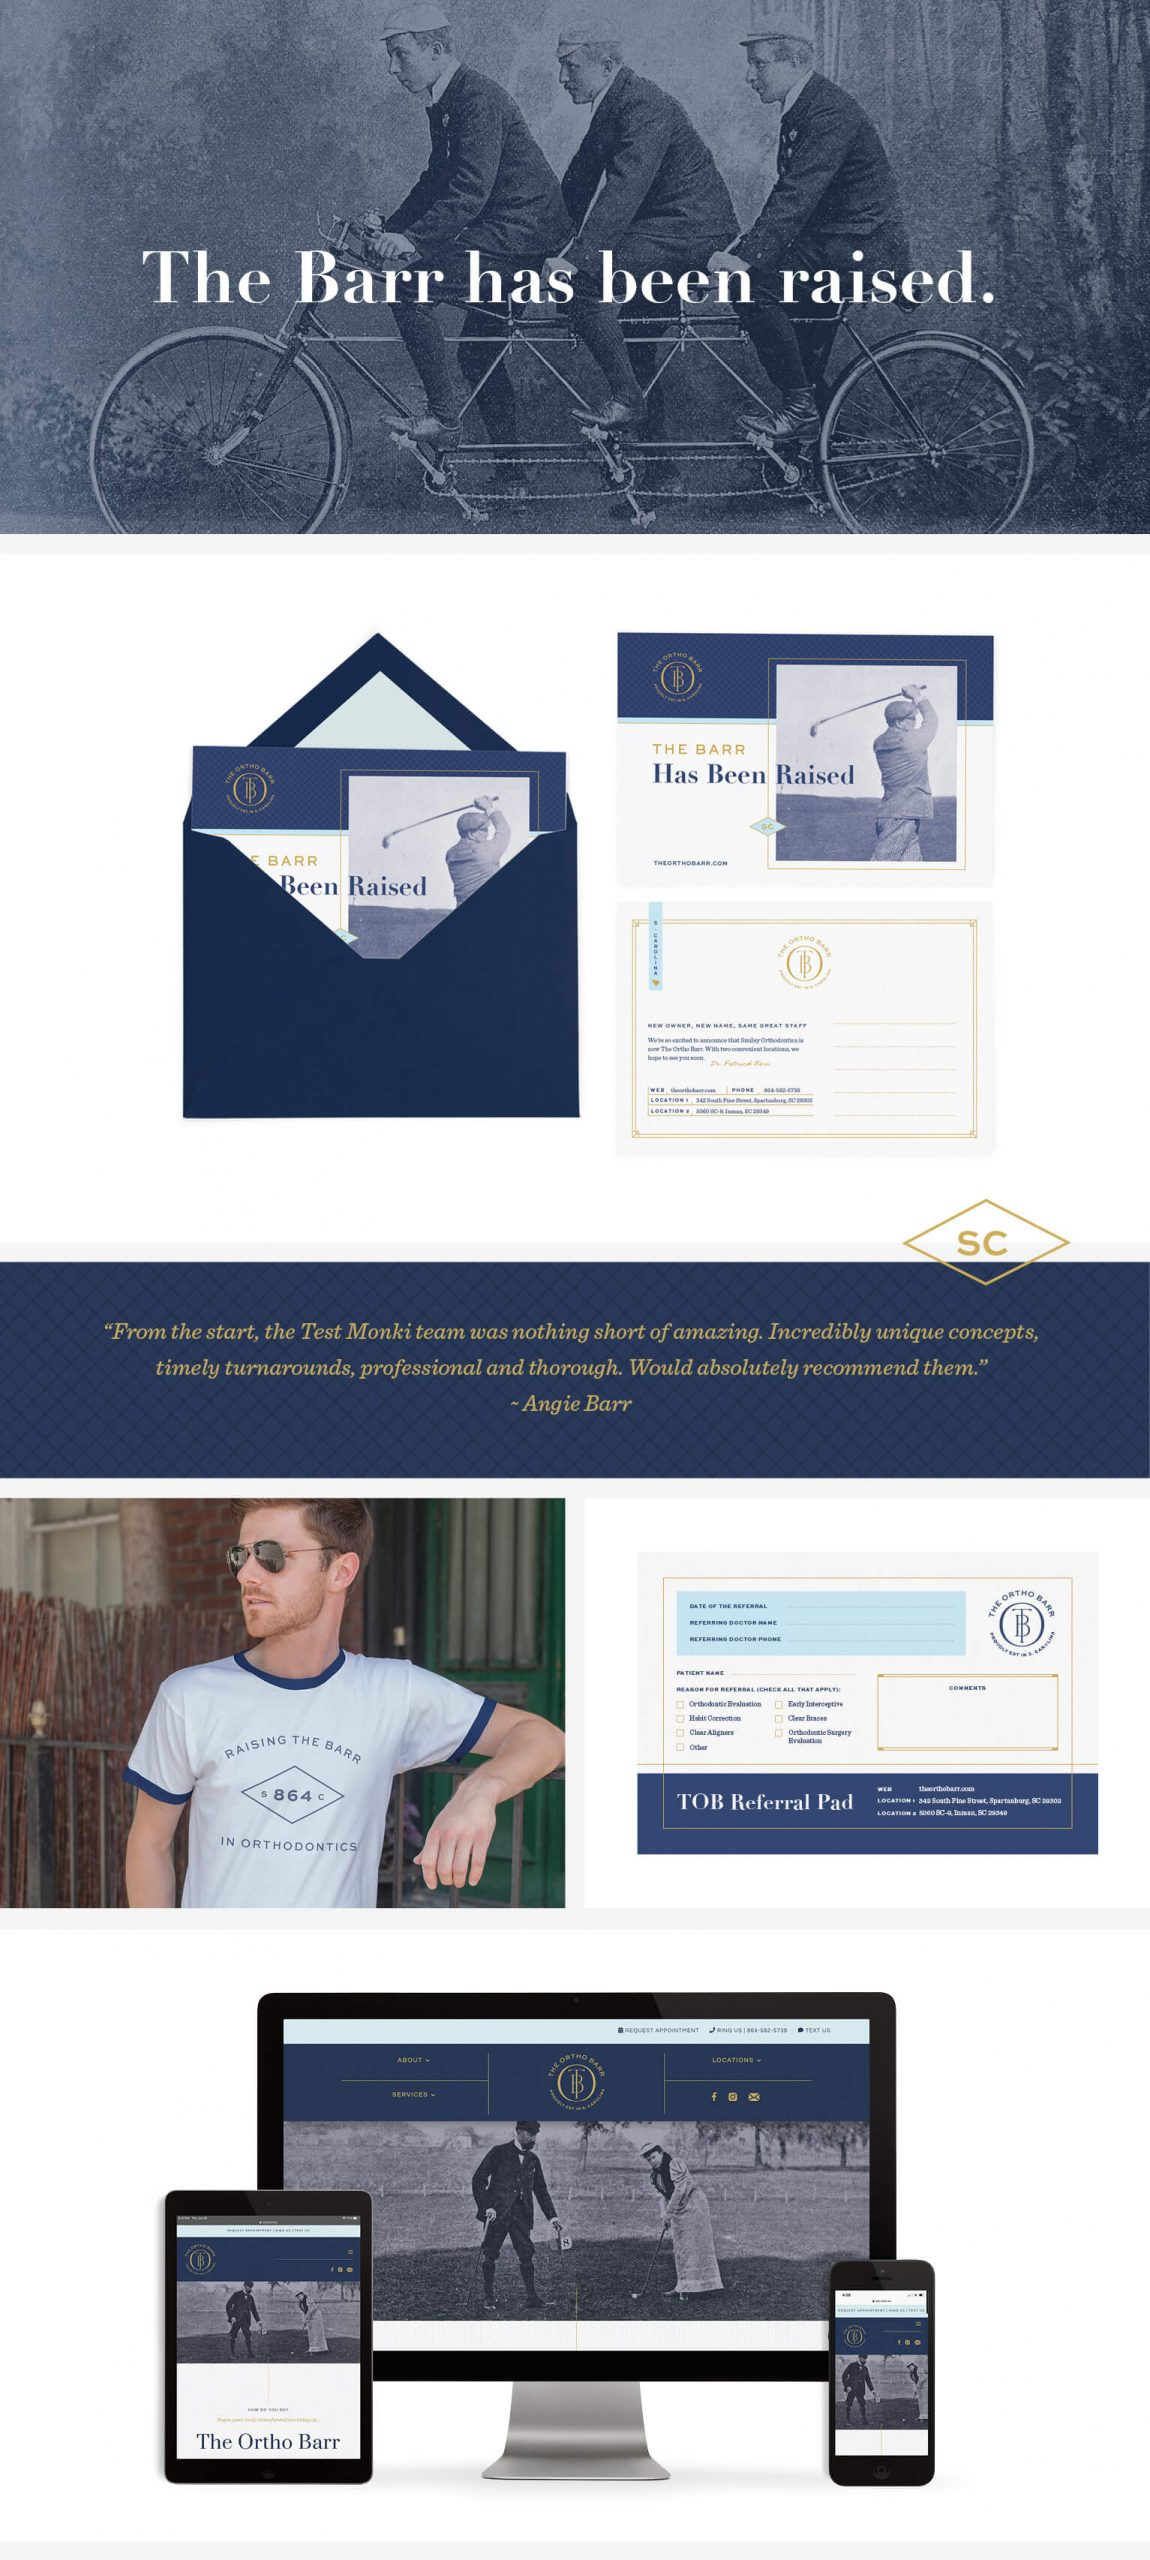 The Ortho Barr, an orthodontic practice located in South Carolina had their branding created by Test Monki.